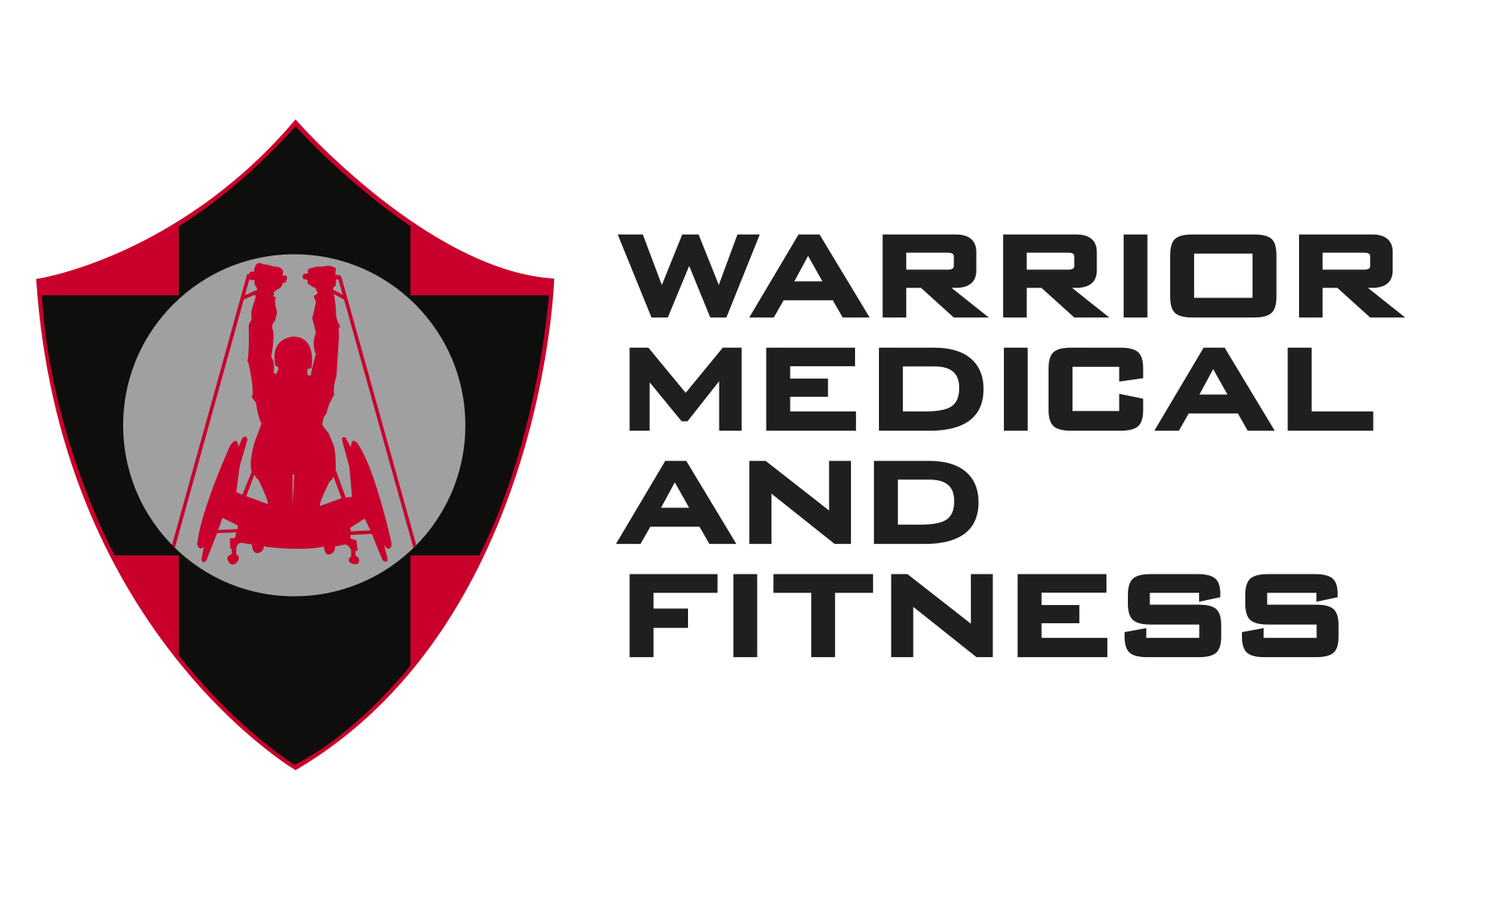 Warrior Medical and Fitness